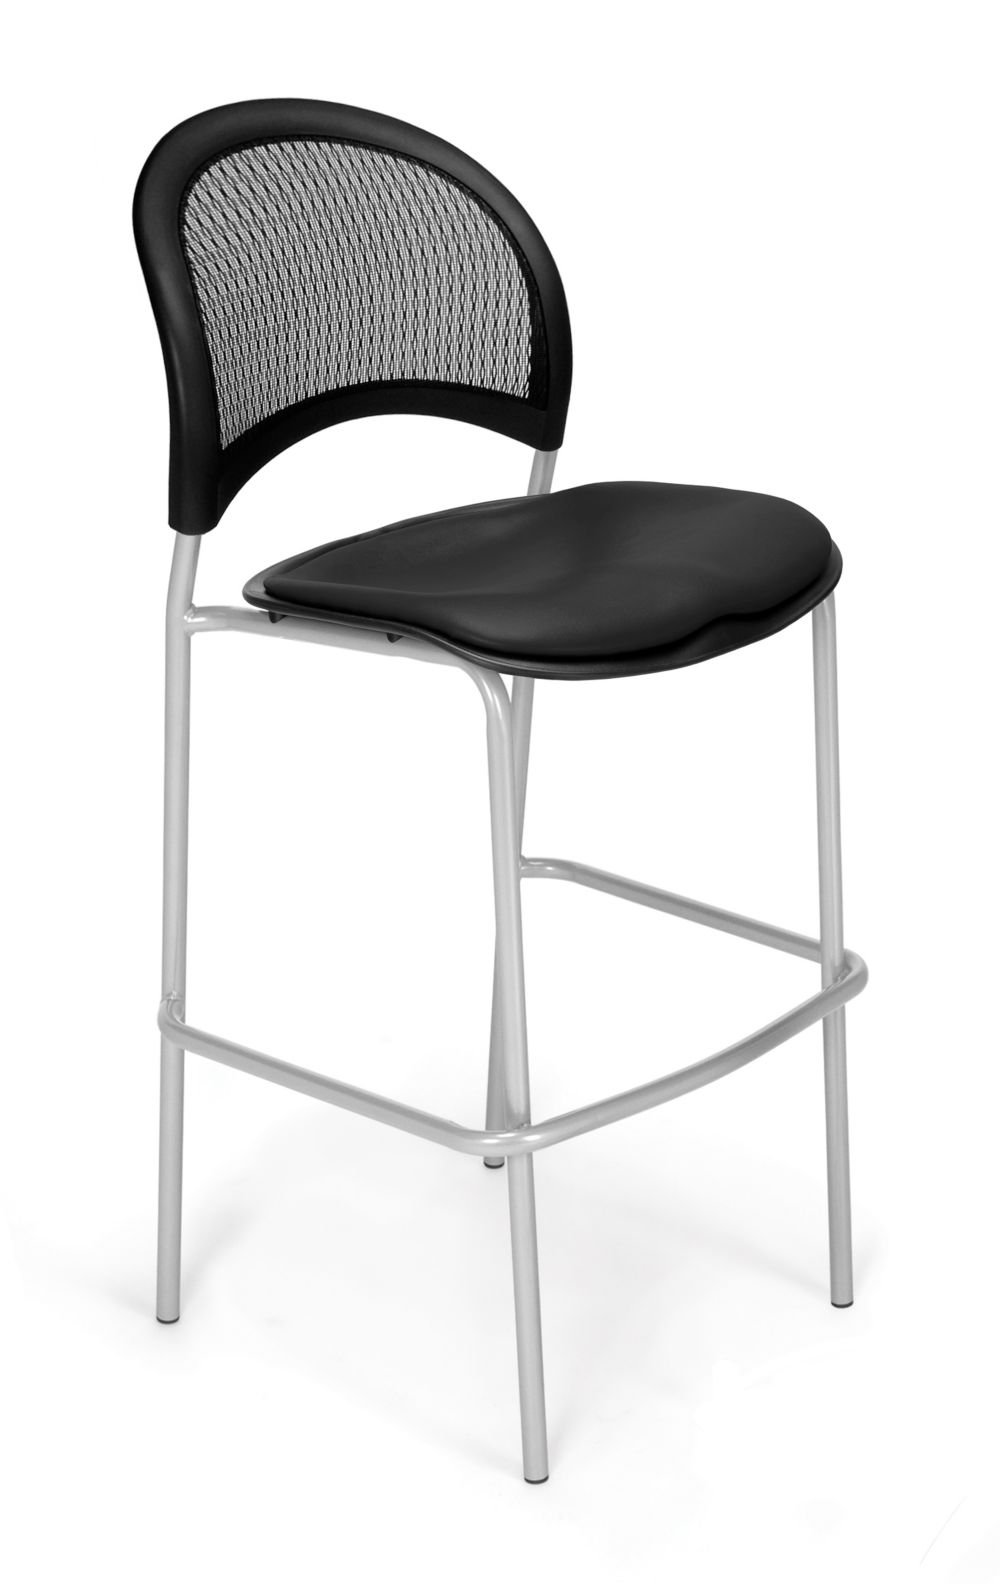 Set of 2 Cafe Height Vinyl Chair Black Vinyl/Silver Frame Dimensions: 21.5''W x 23.5''D x 45.25''H Weight: 108 lbs